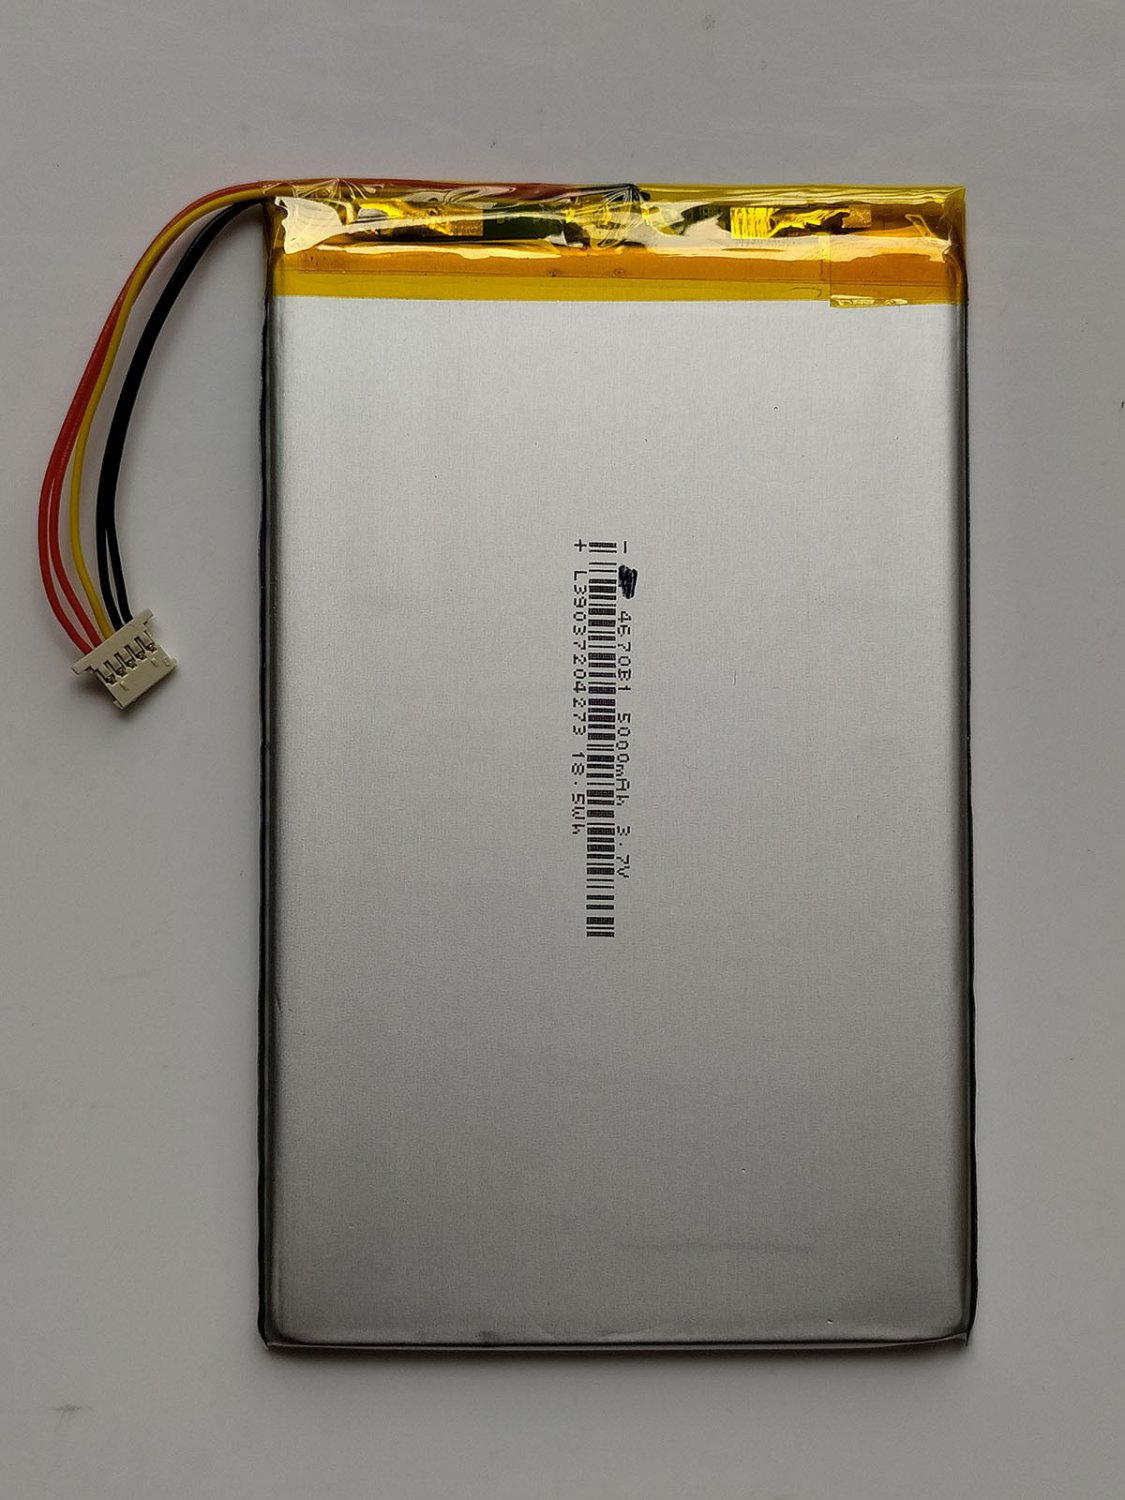 SP 4670B1 Battery Replacement For Autel MaxiSys MS906 MS905 5000mAh 3.7V 18.5Wh